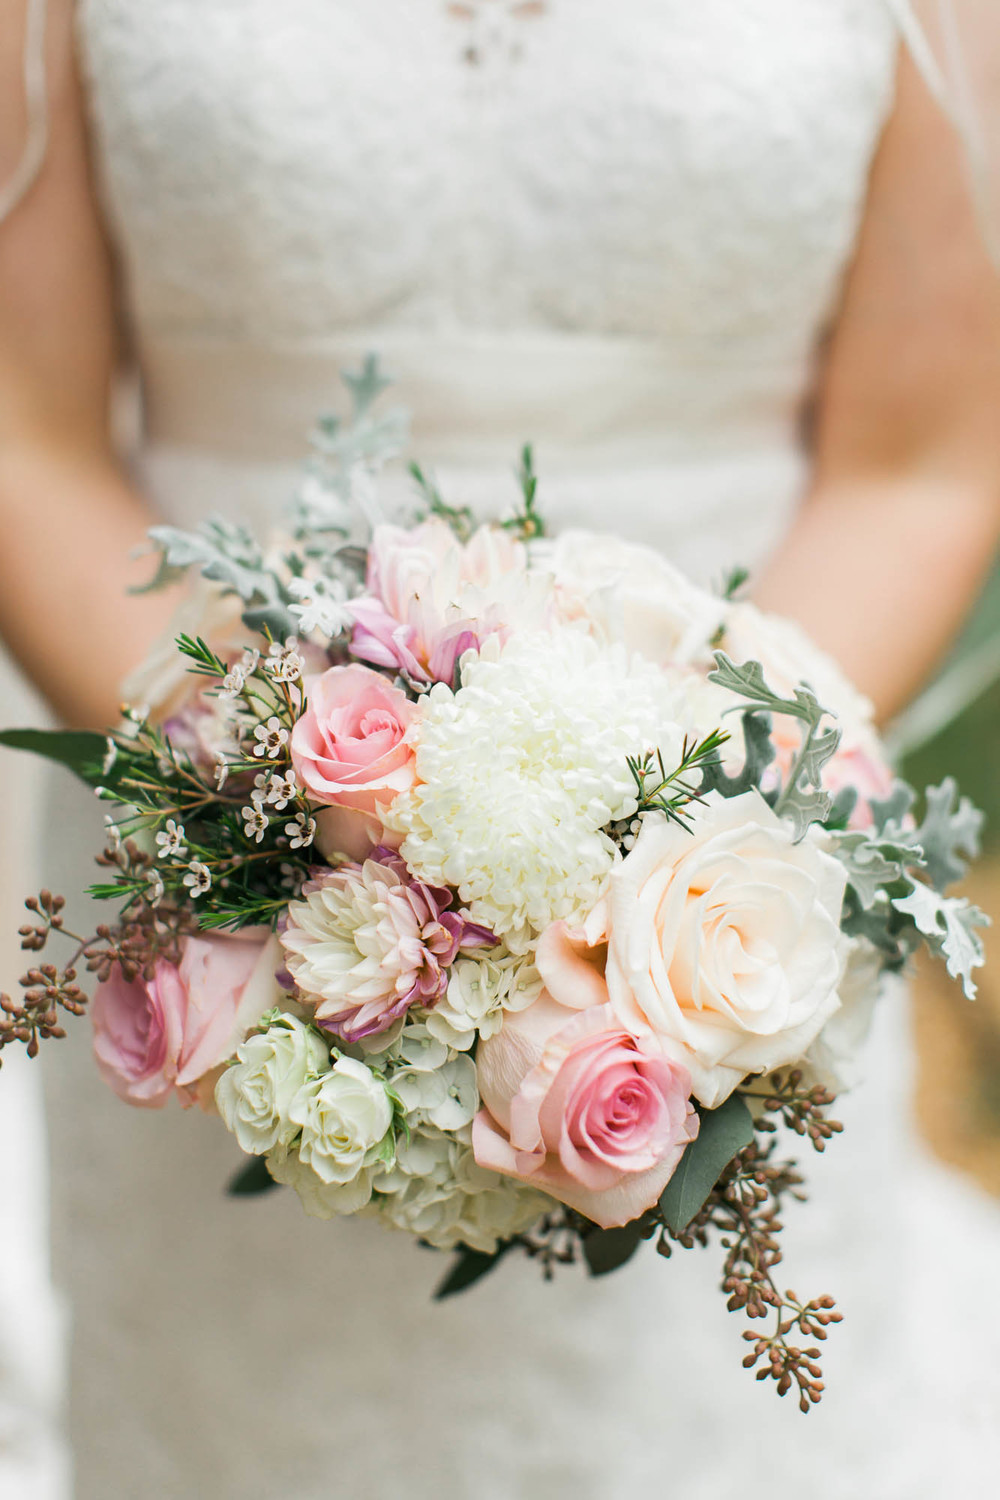 Soft pink, blush, and cream bride's bouquet